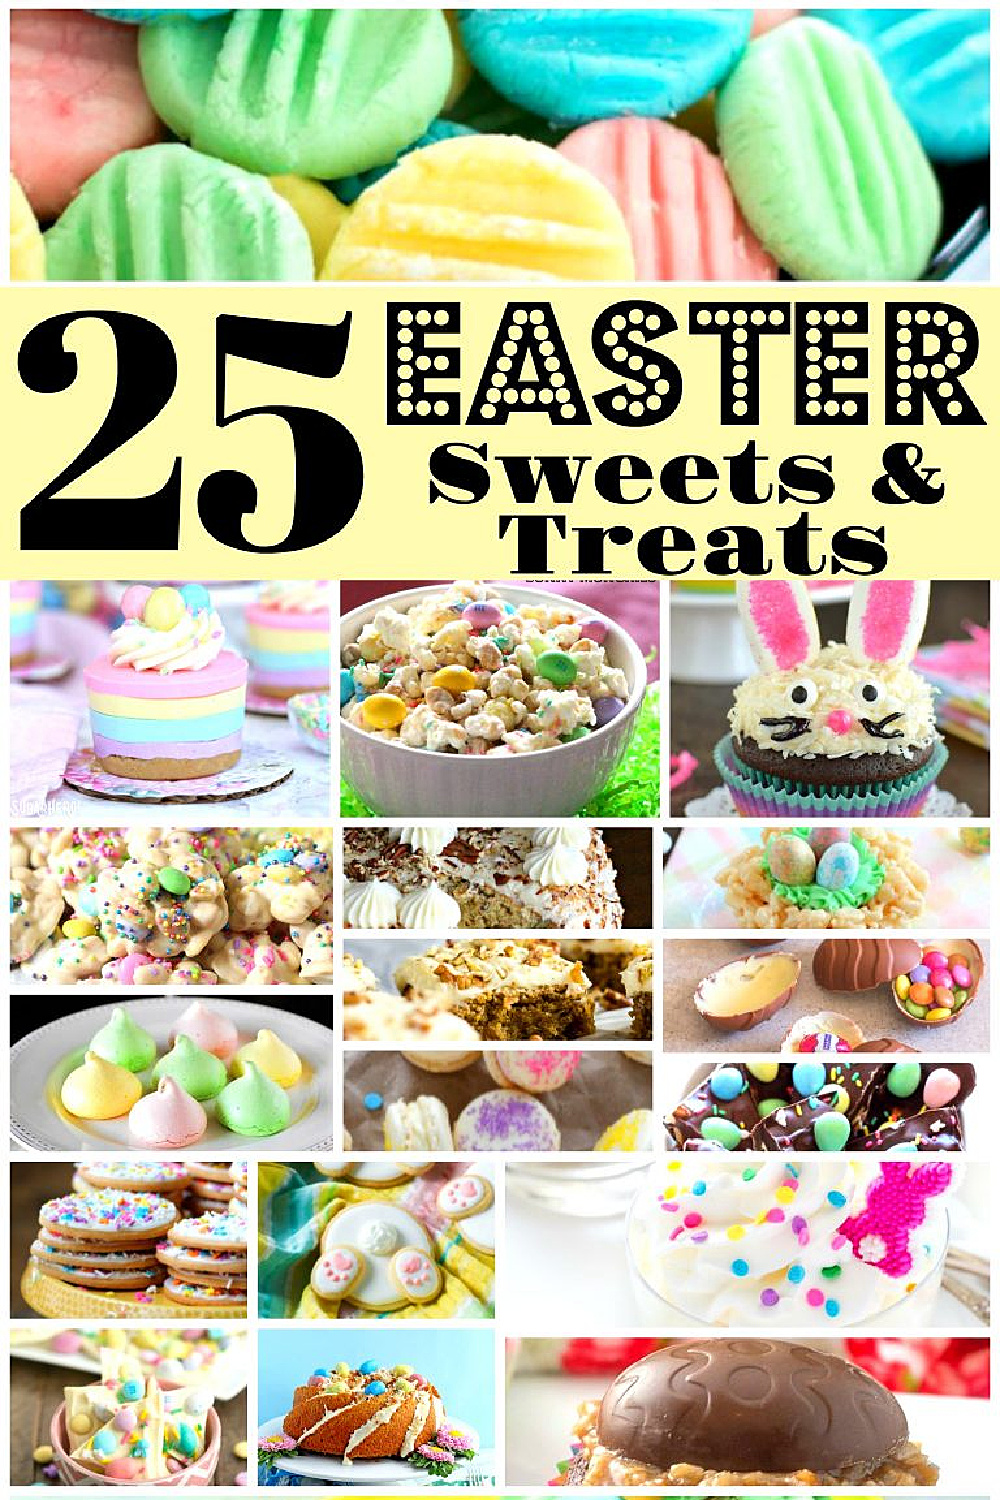 There's something to satisfy everyone's sweet tooth in this collection of 25 Easter Sweets and Treats #easterdesserts #eastercandyh #eastereggs #easterbasket #desserts #southernrecipes